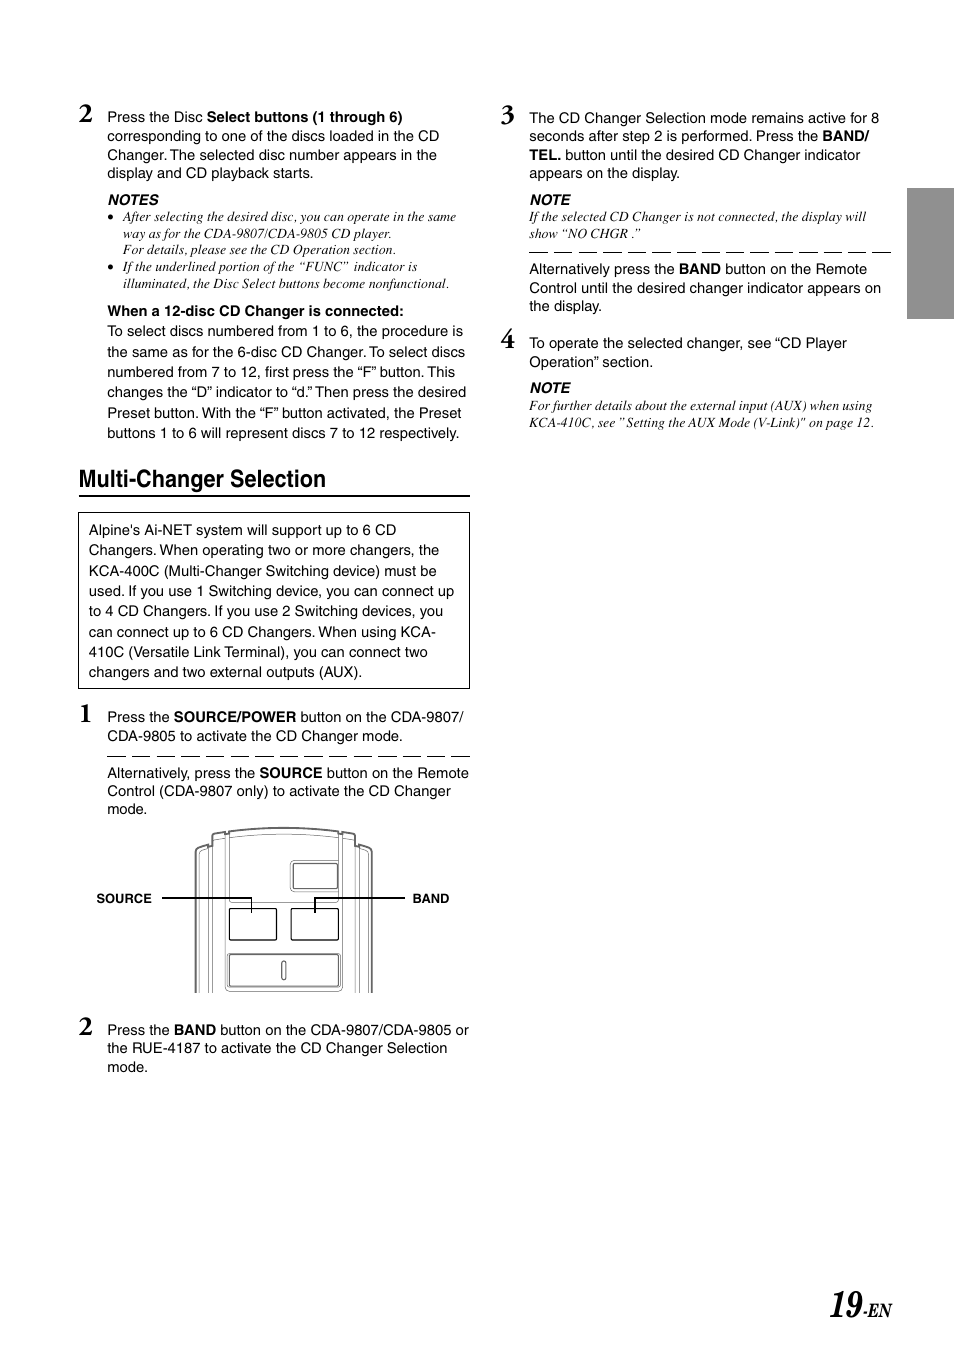 multi changer selection alpine cda 9807 user manual page 21 41 rh manualsdir com Alpine CDA 9805 Manual Alpine CDA 9807 Connector